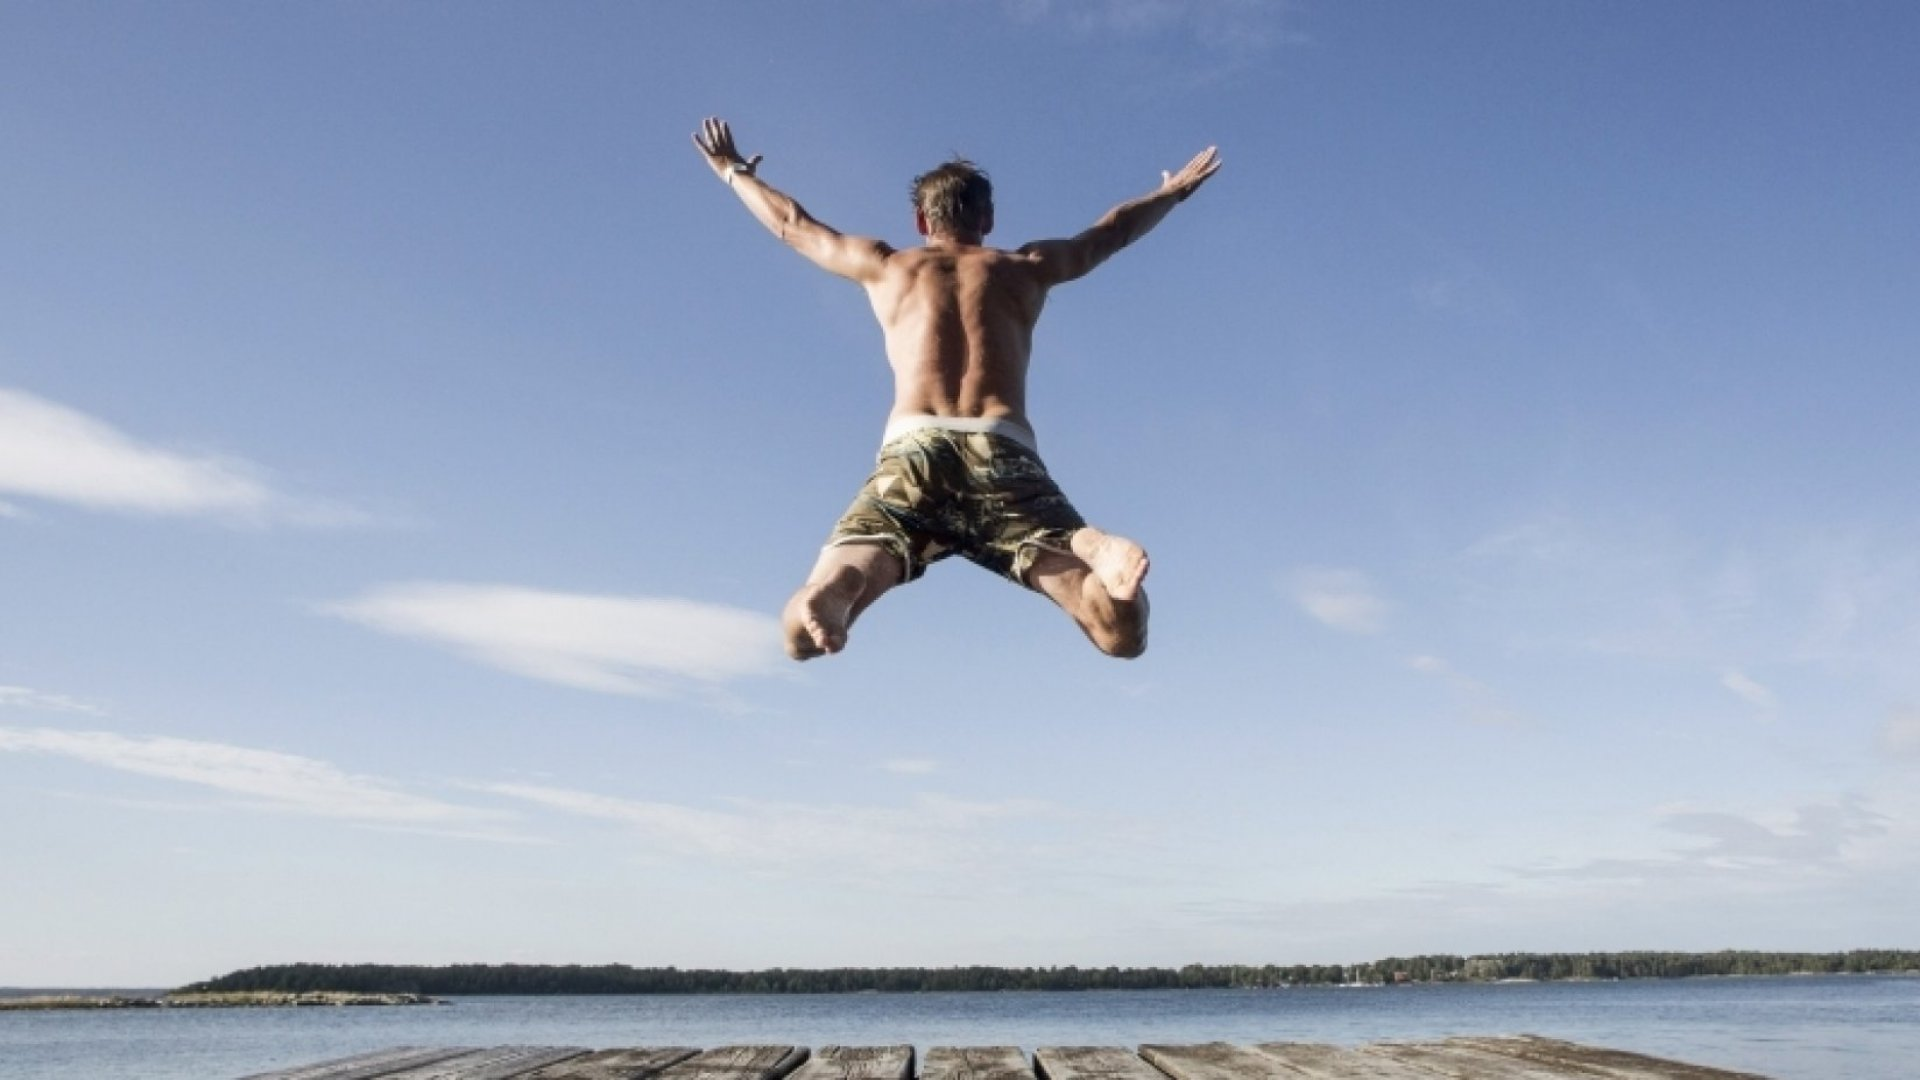 7 Surprisingly Effective Ways to Conquer Your Fear of Making a Major Change